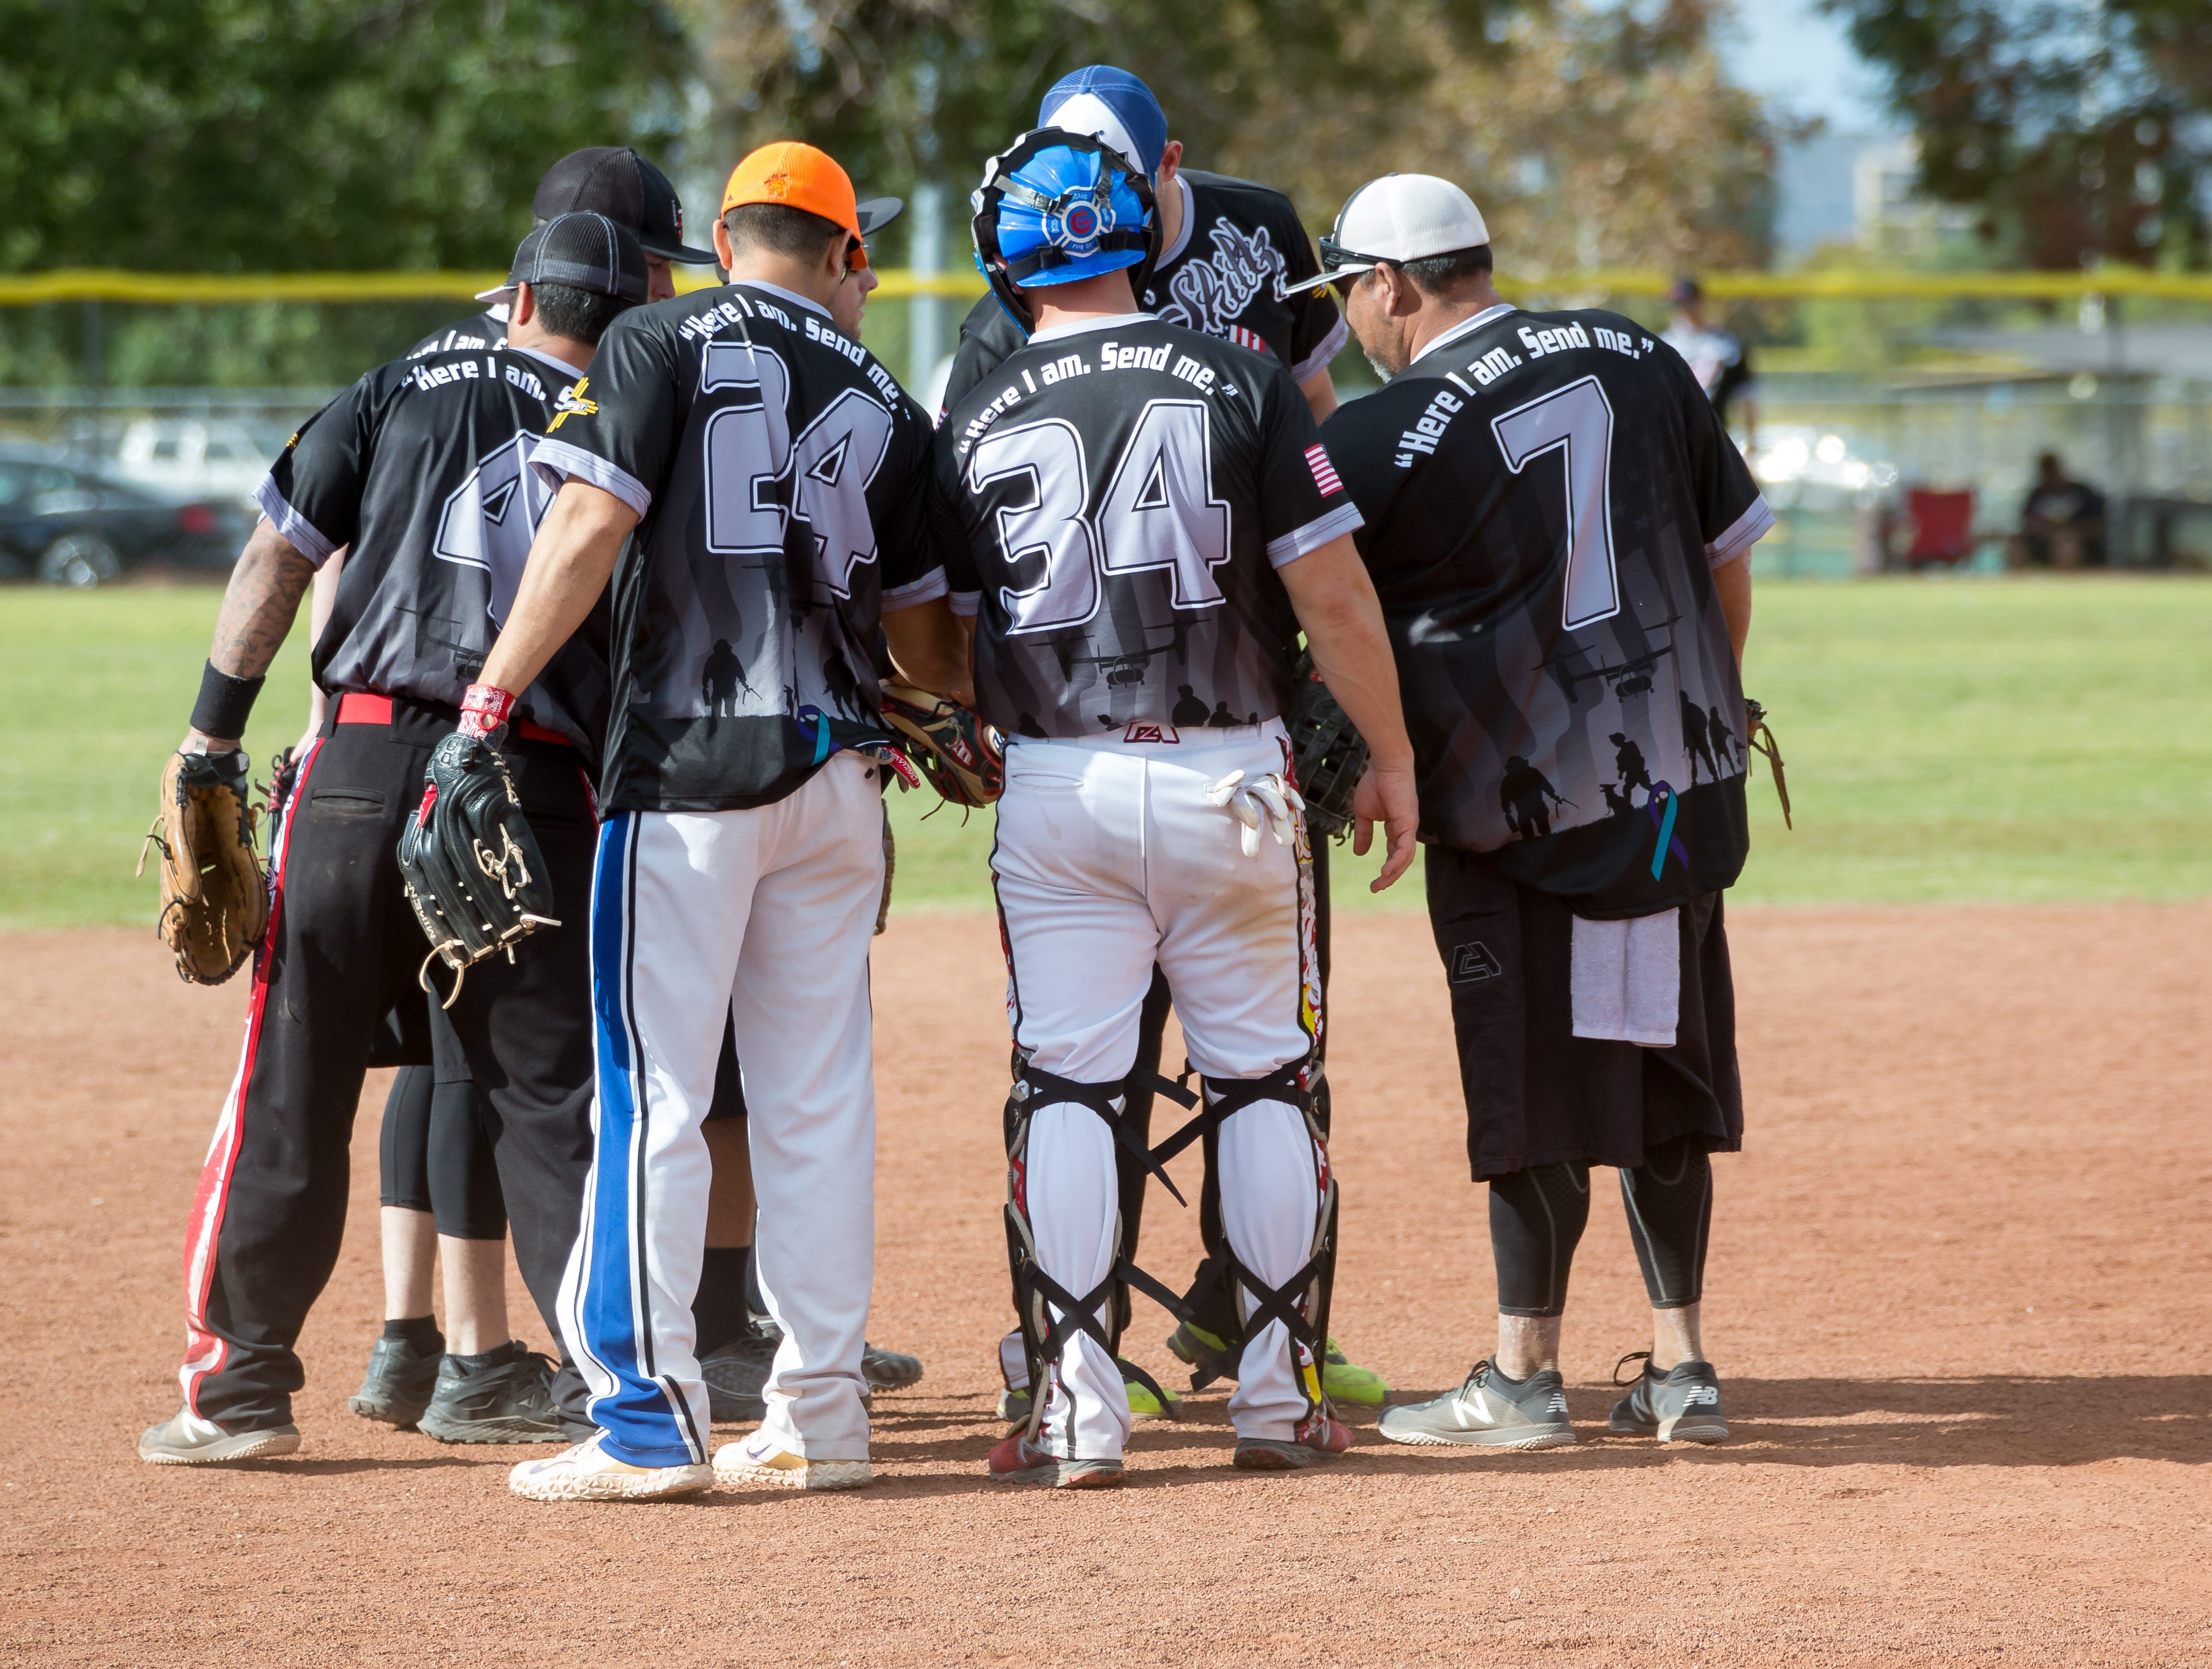 Teams gather for tournament play on Sunday, Oct. 7, 2018 during the 39th Whole Enchilada Invitational softball tournament at the Hadley complex.